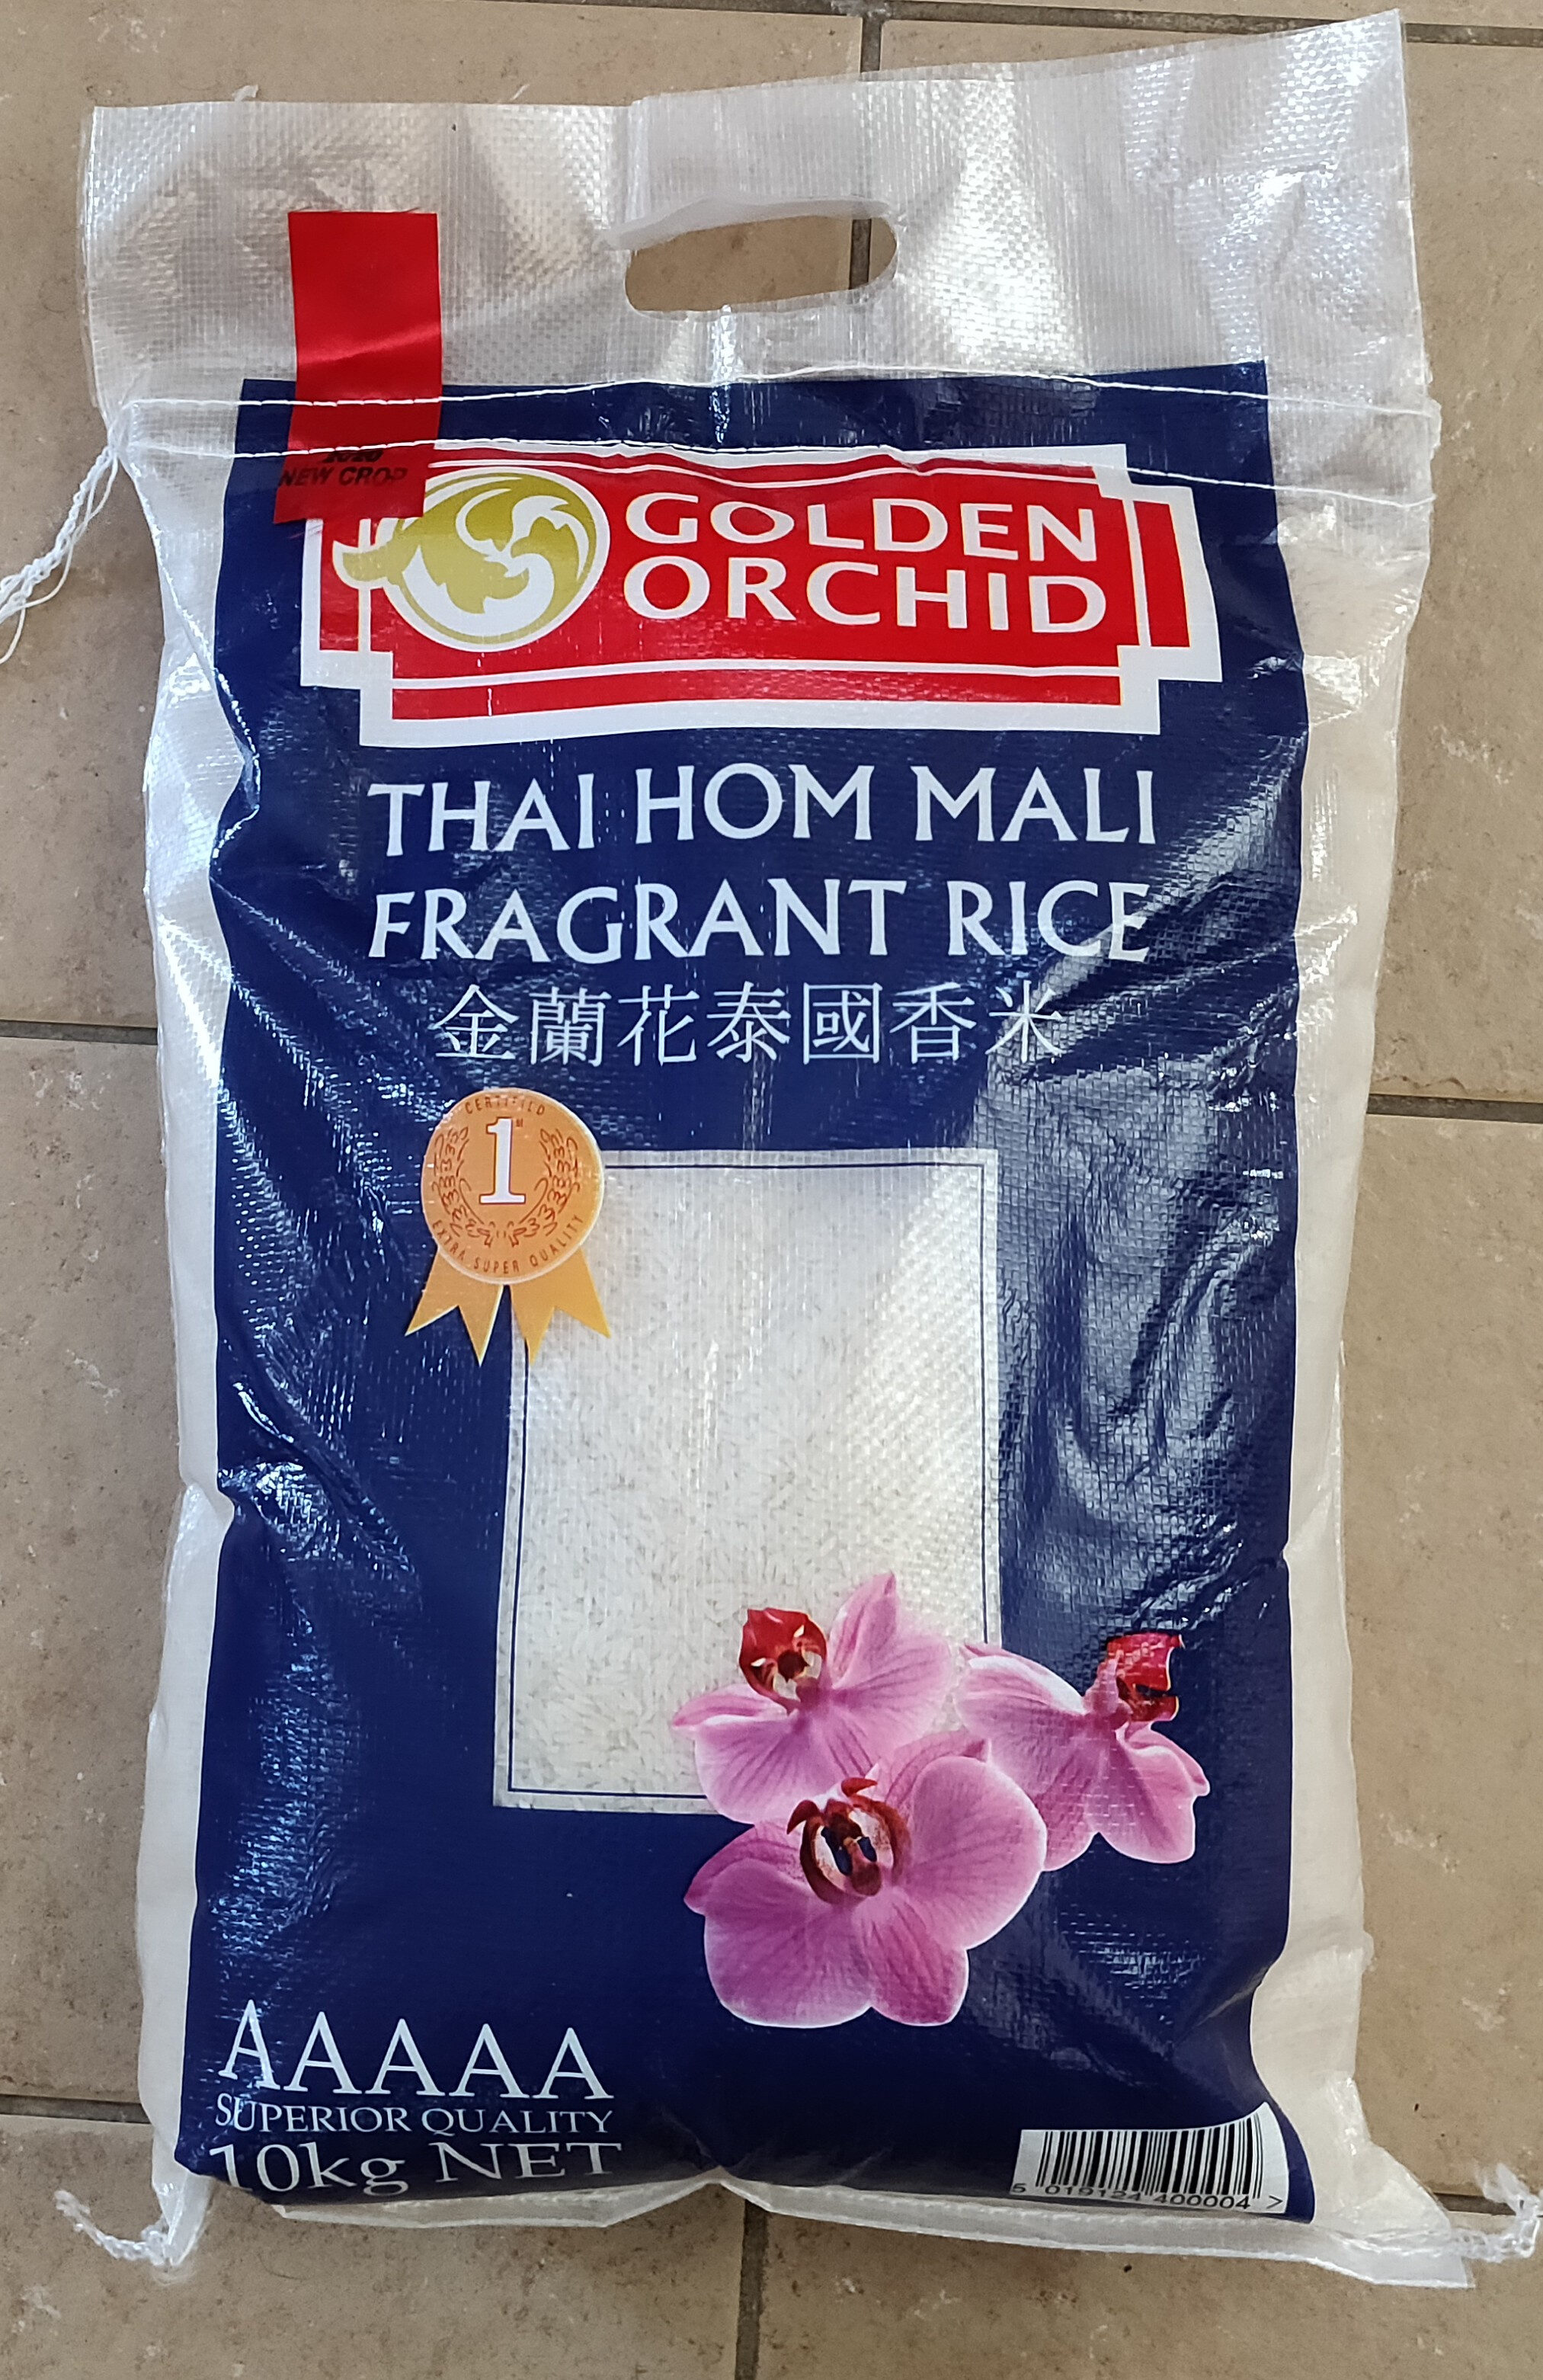 Thai Hom Mali Fragrant Rice - Produit - en